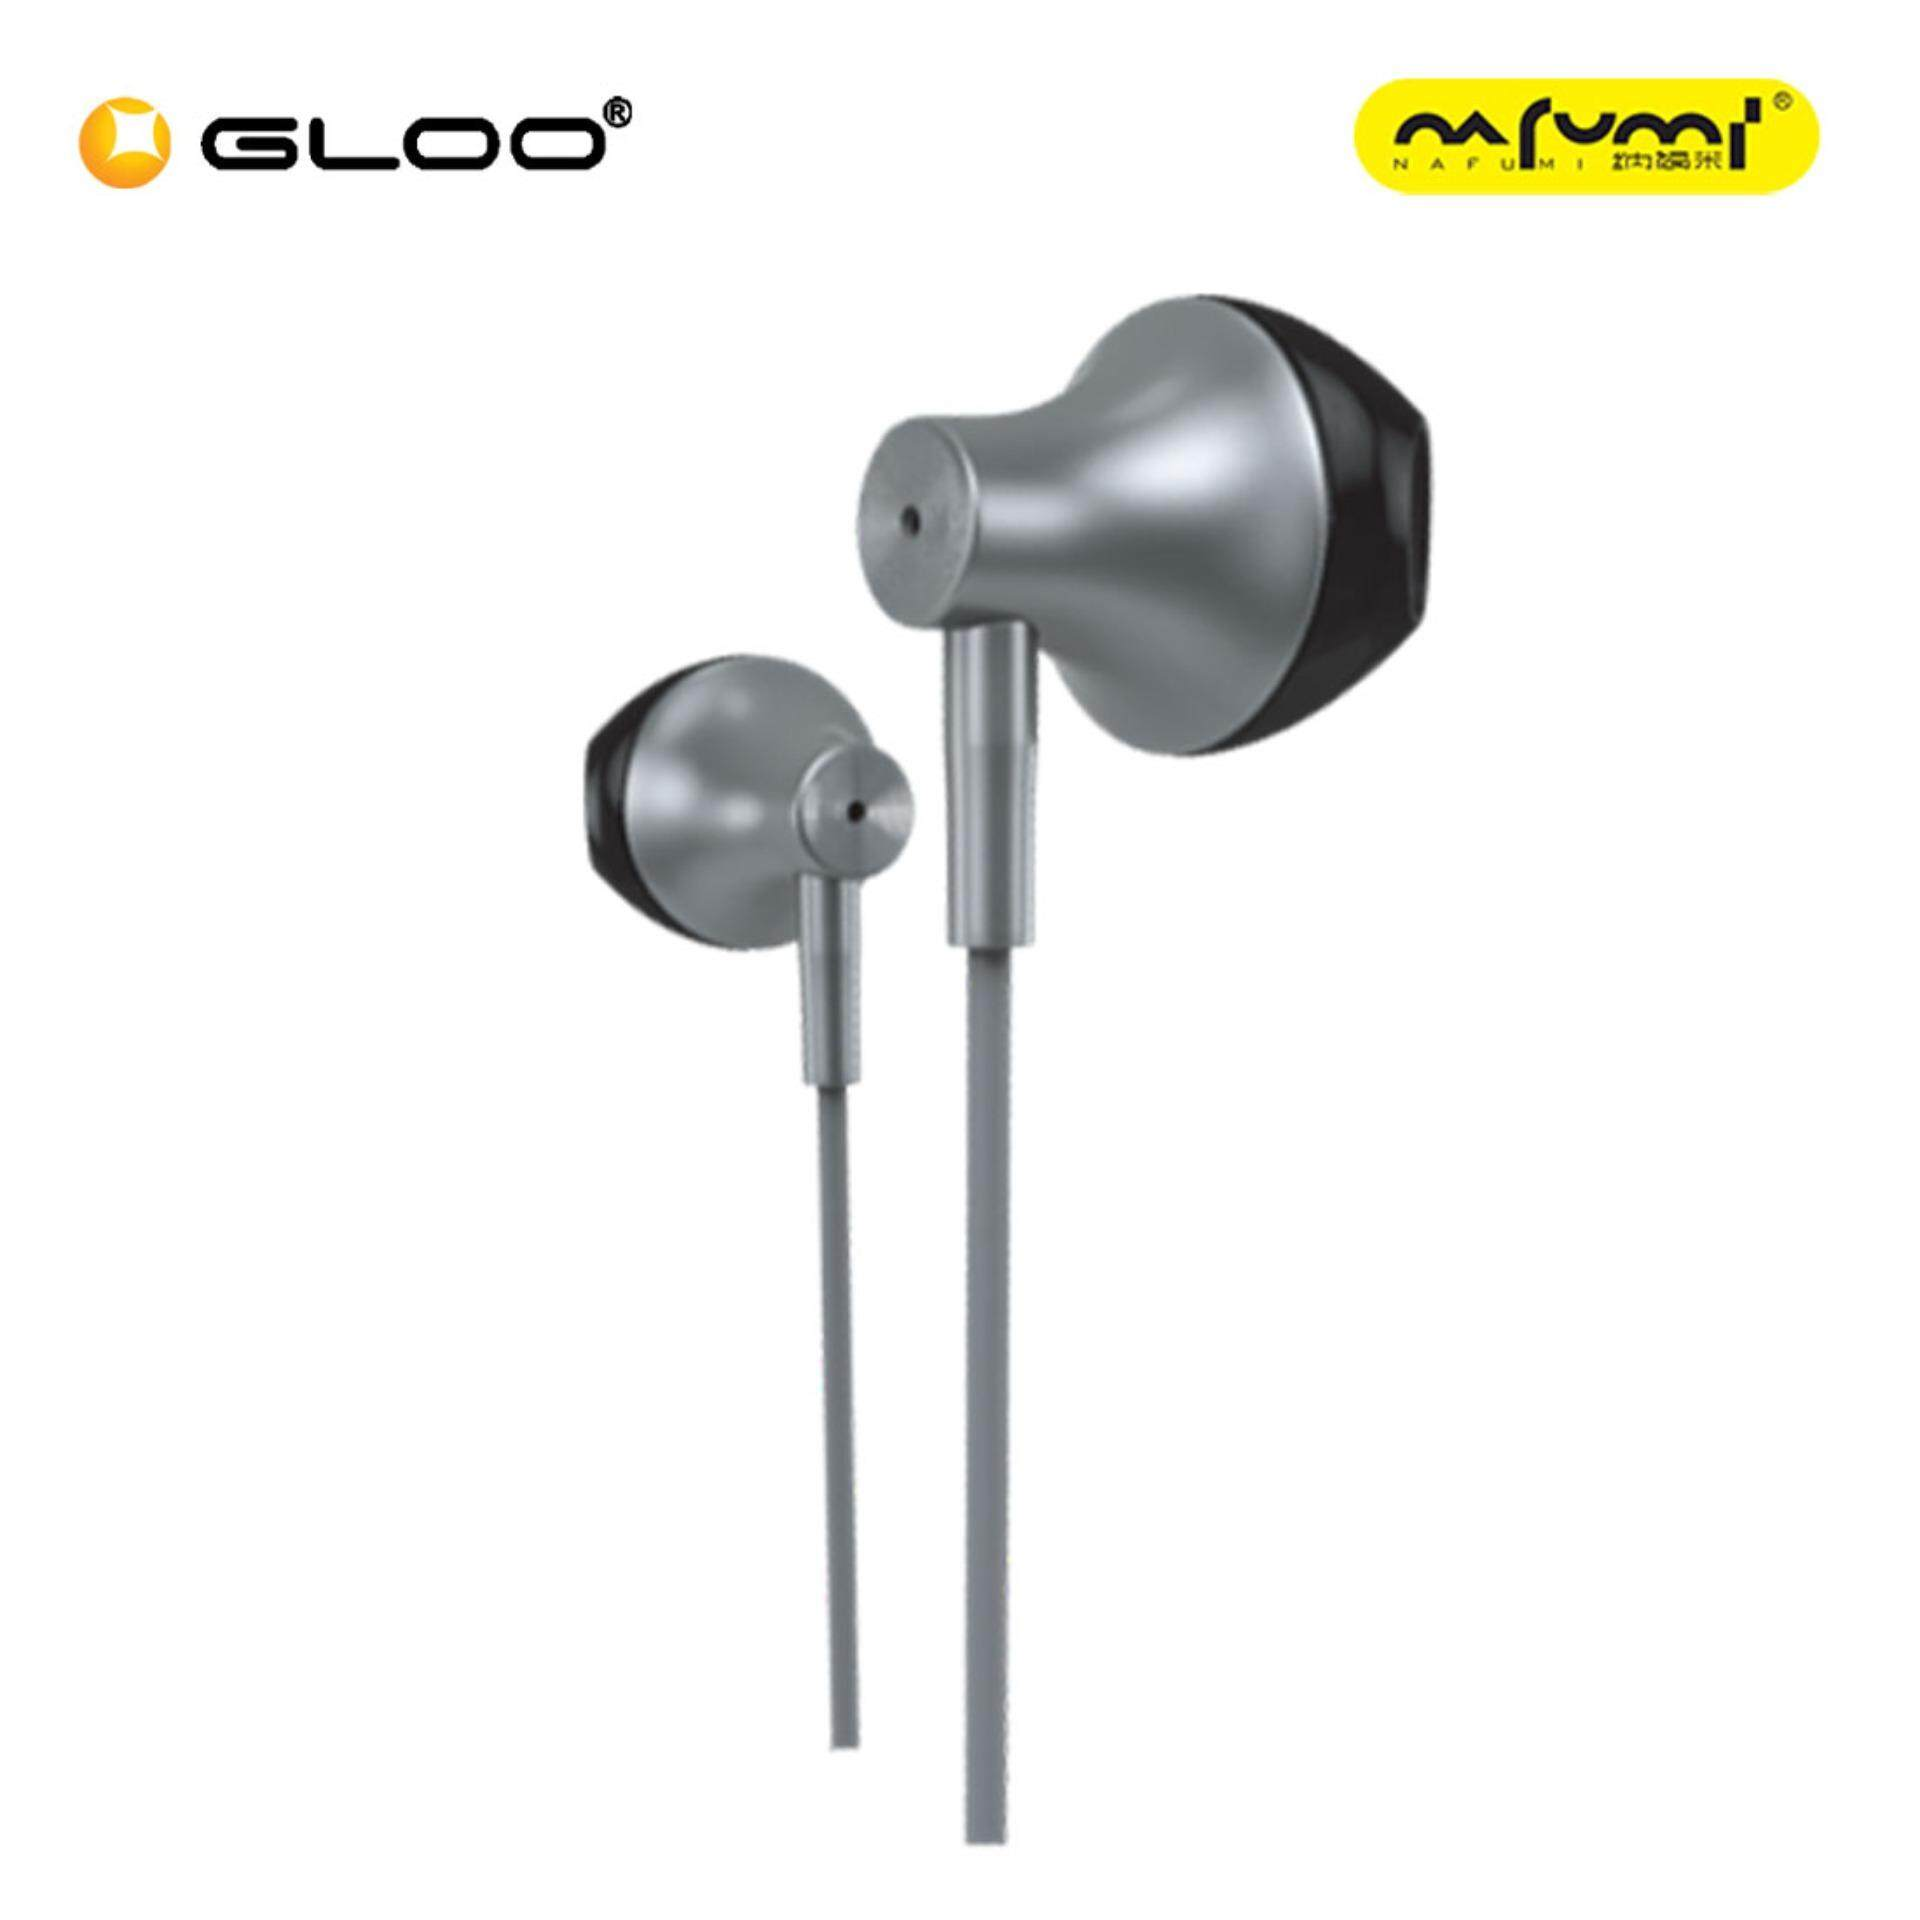 Nafumi X6 Earpiece (Black)